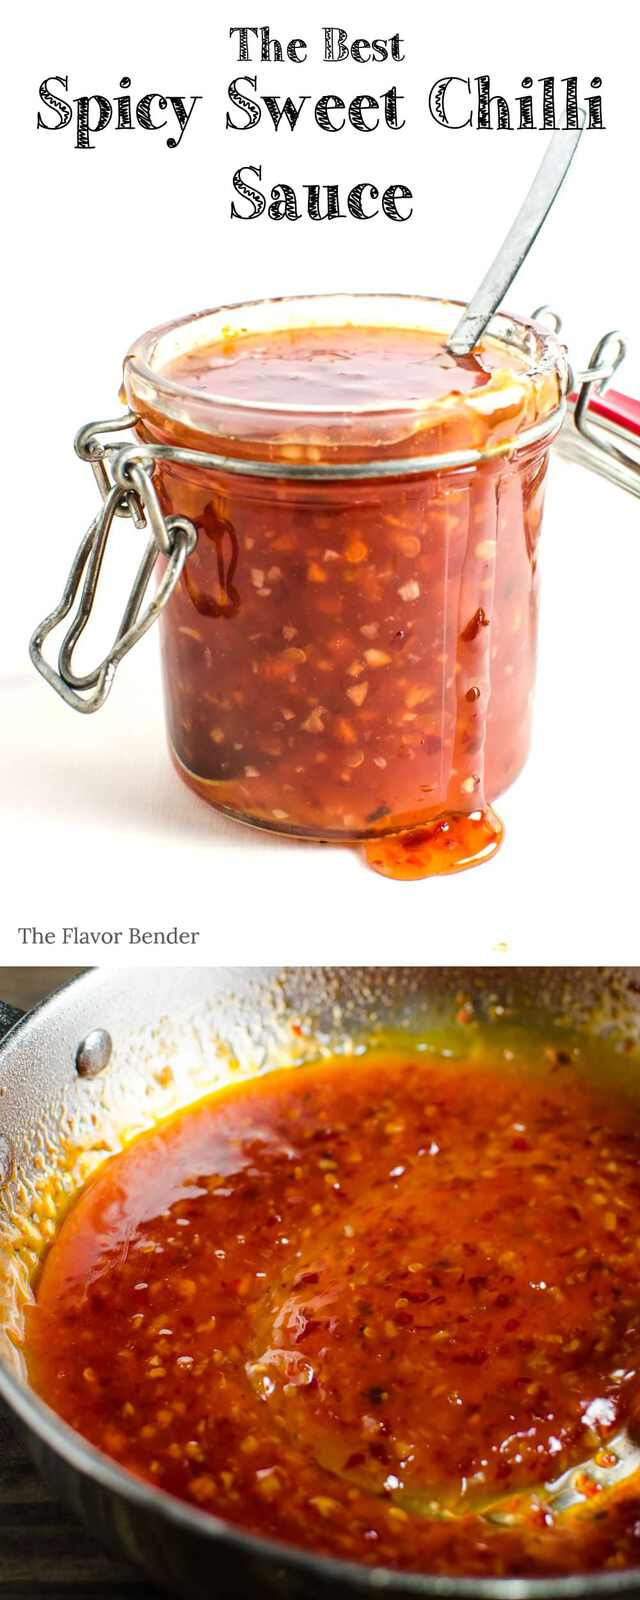 The Easiest and Best Sweet Chili Sauce -  easy to make, and easy to adapt and most importantly absolutely delicious! Learn how to make this authentic Asian sweet chili sauce with step by step instructions. Great for canning too.